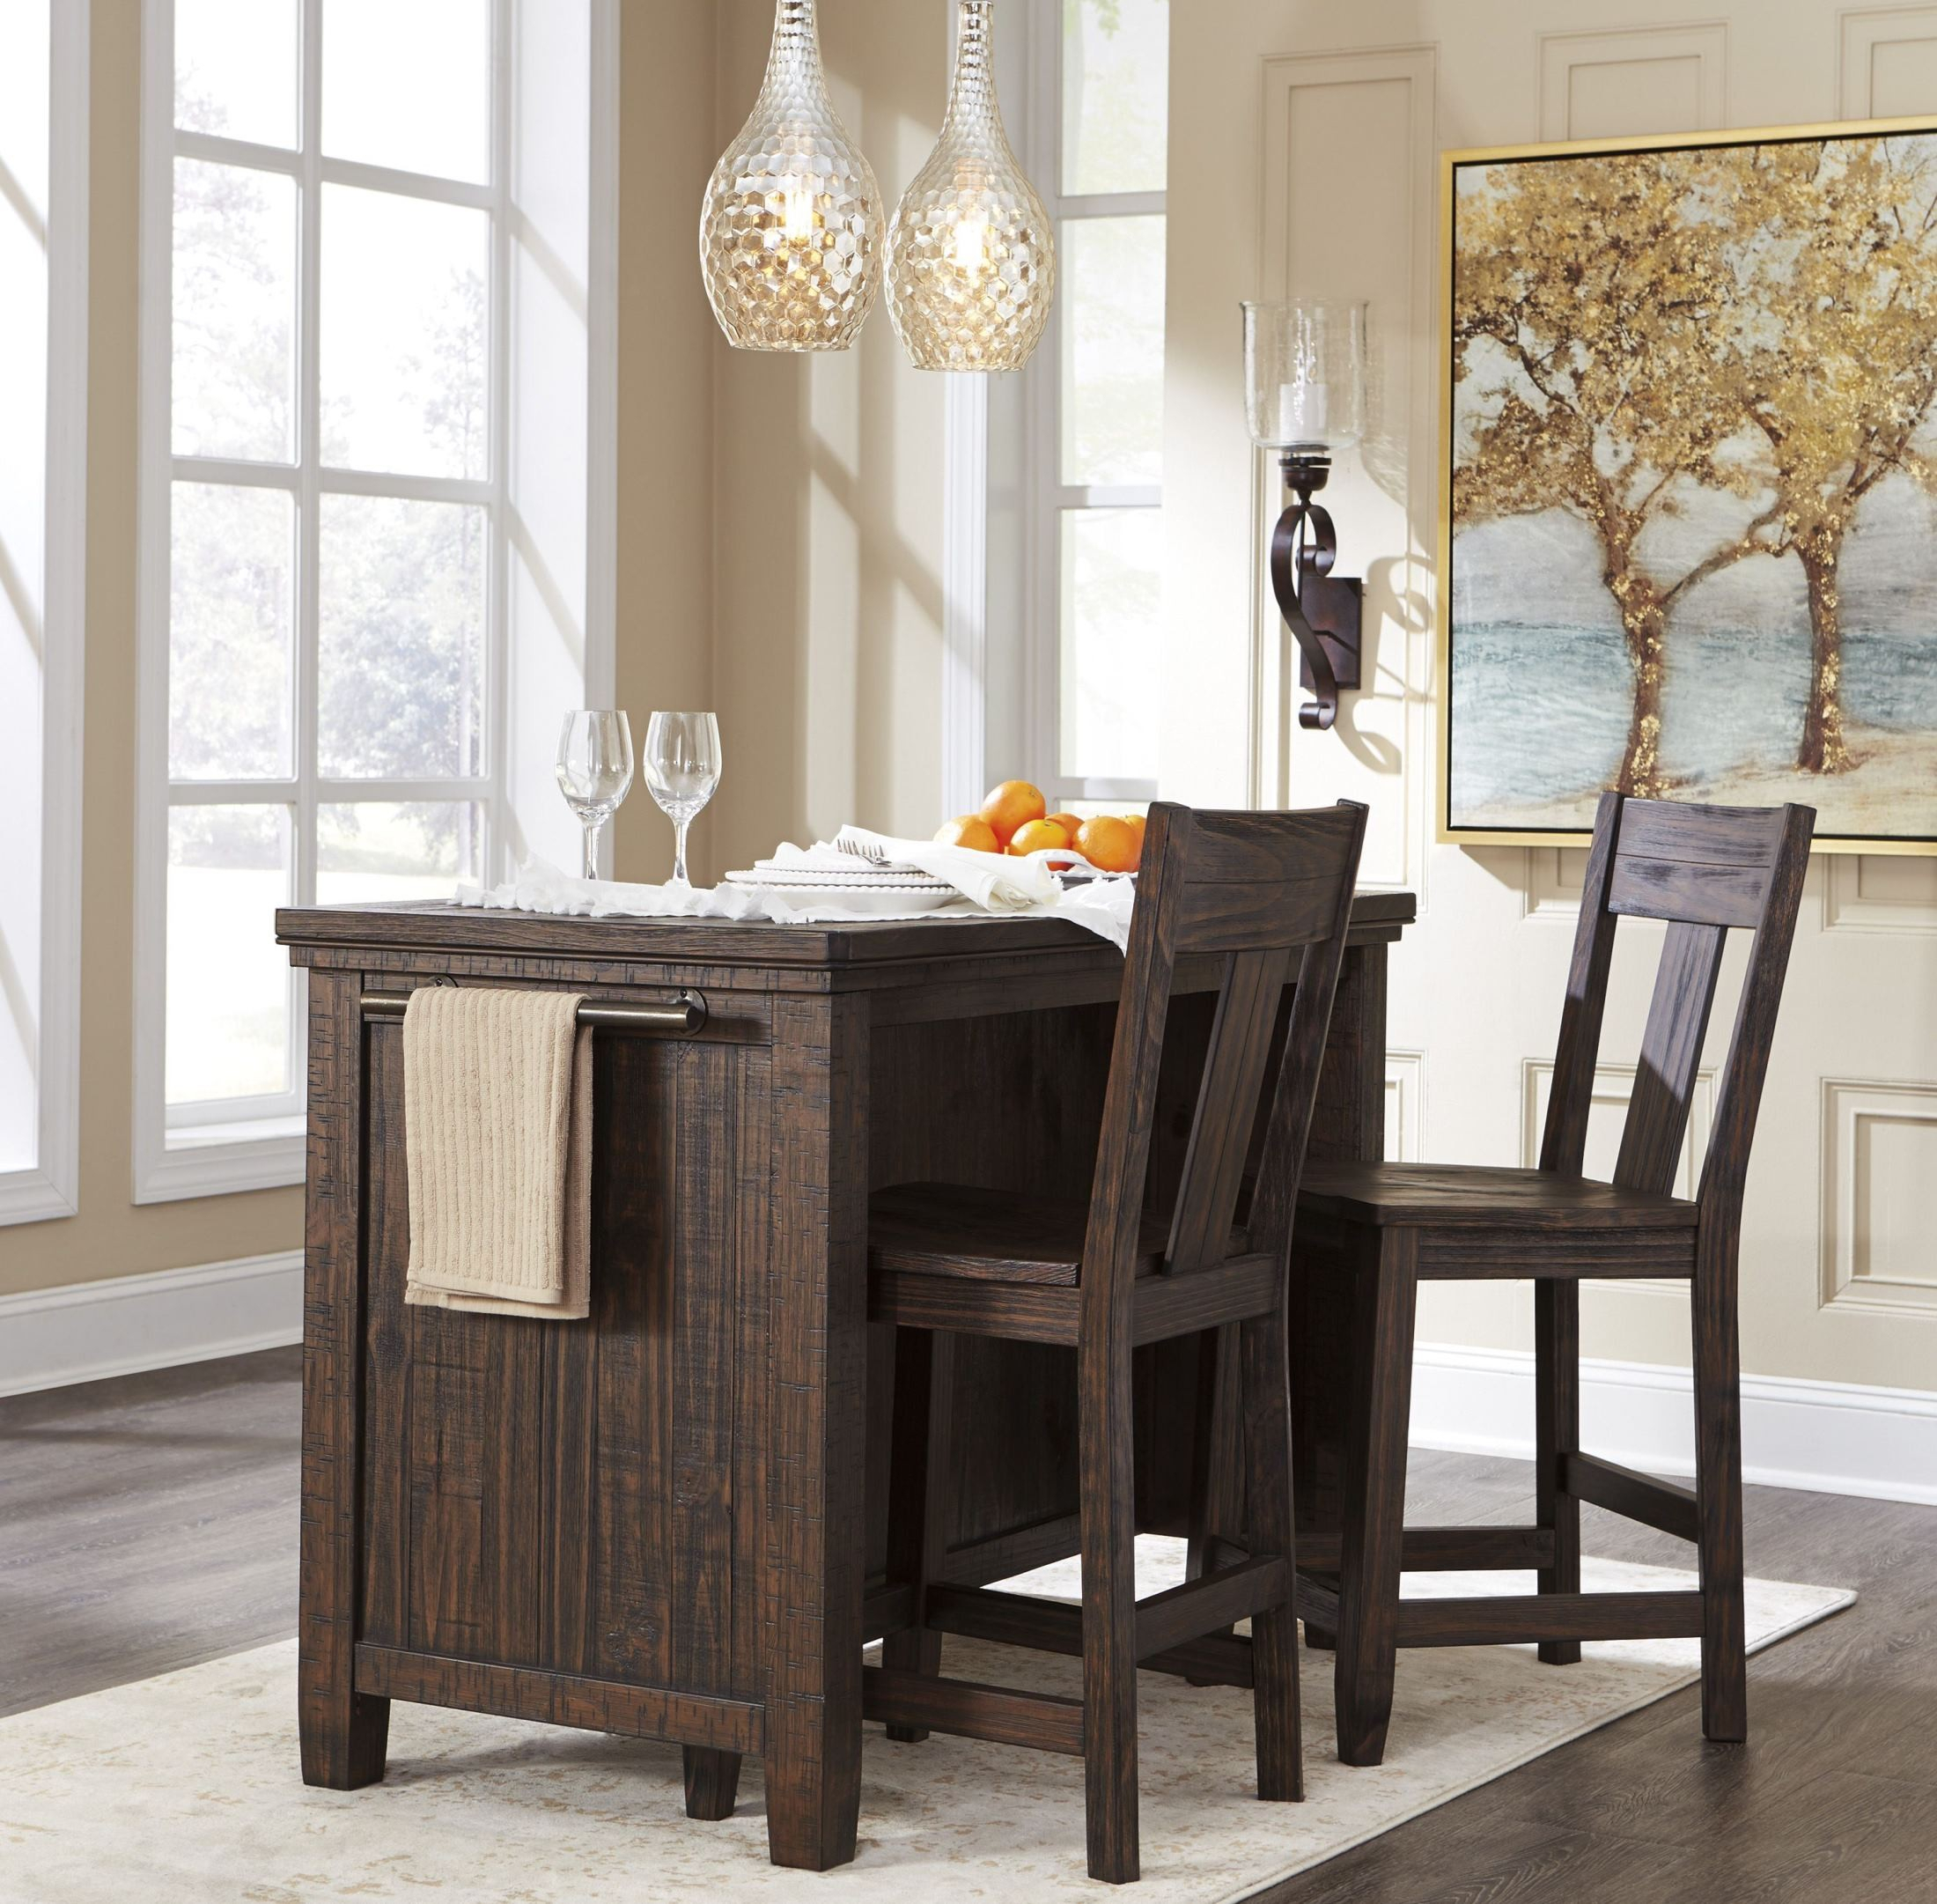 Trudell Dark Brown Rectangular Storage Counter Height Regarding Most Recent Desloge Counter Height Trestle Dining Tables (View 14 of 15)